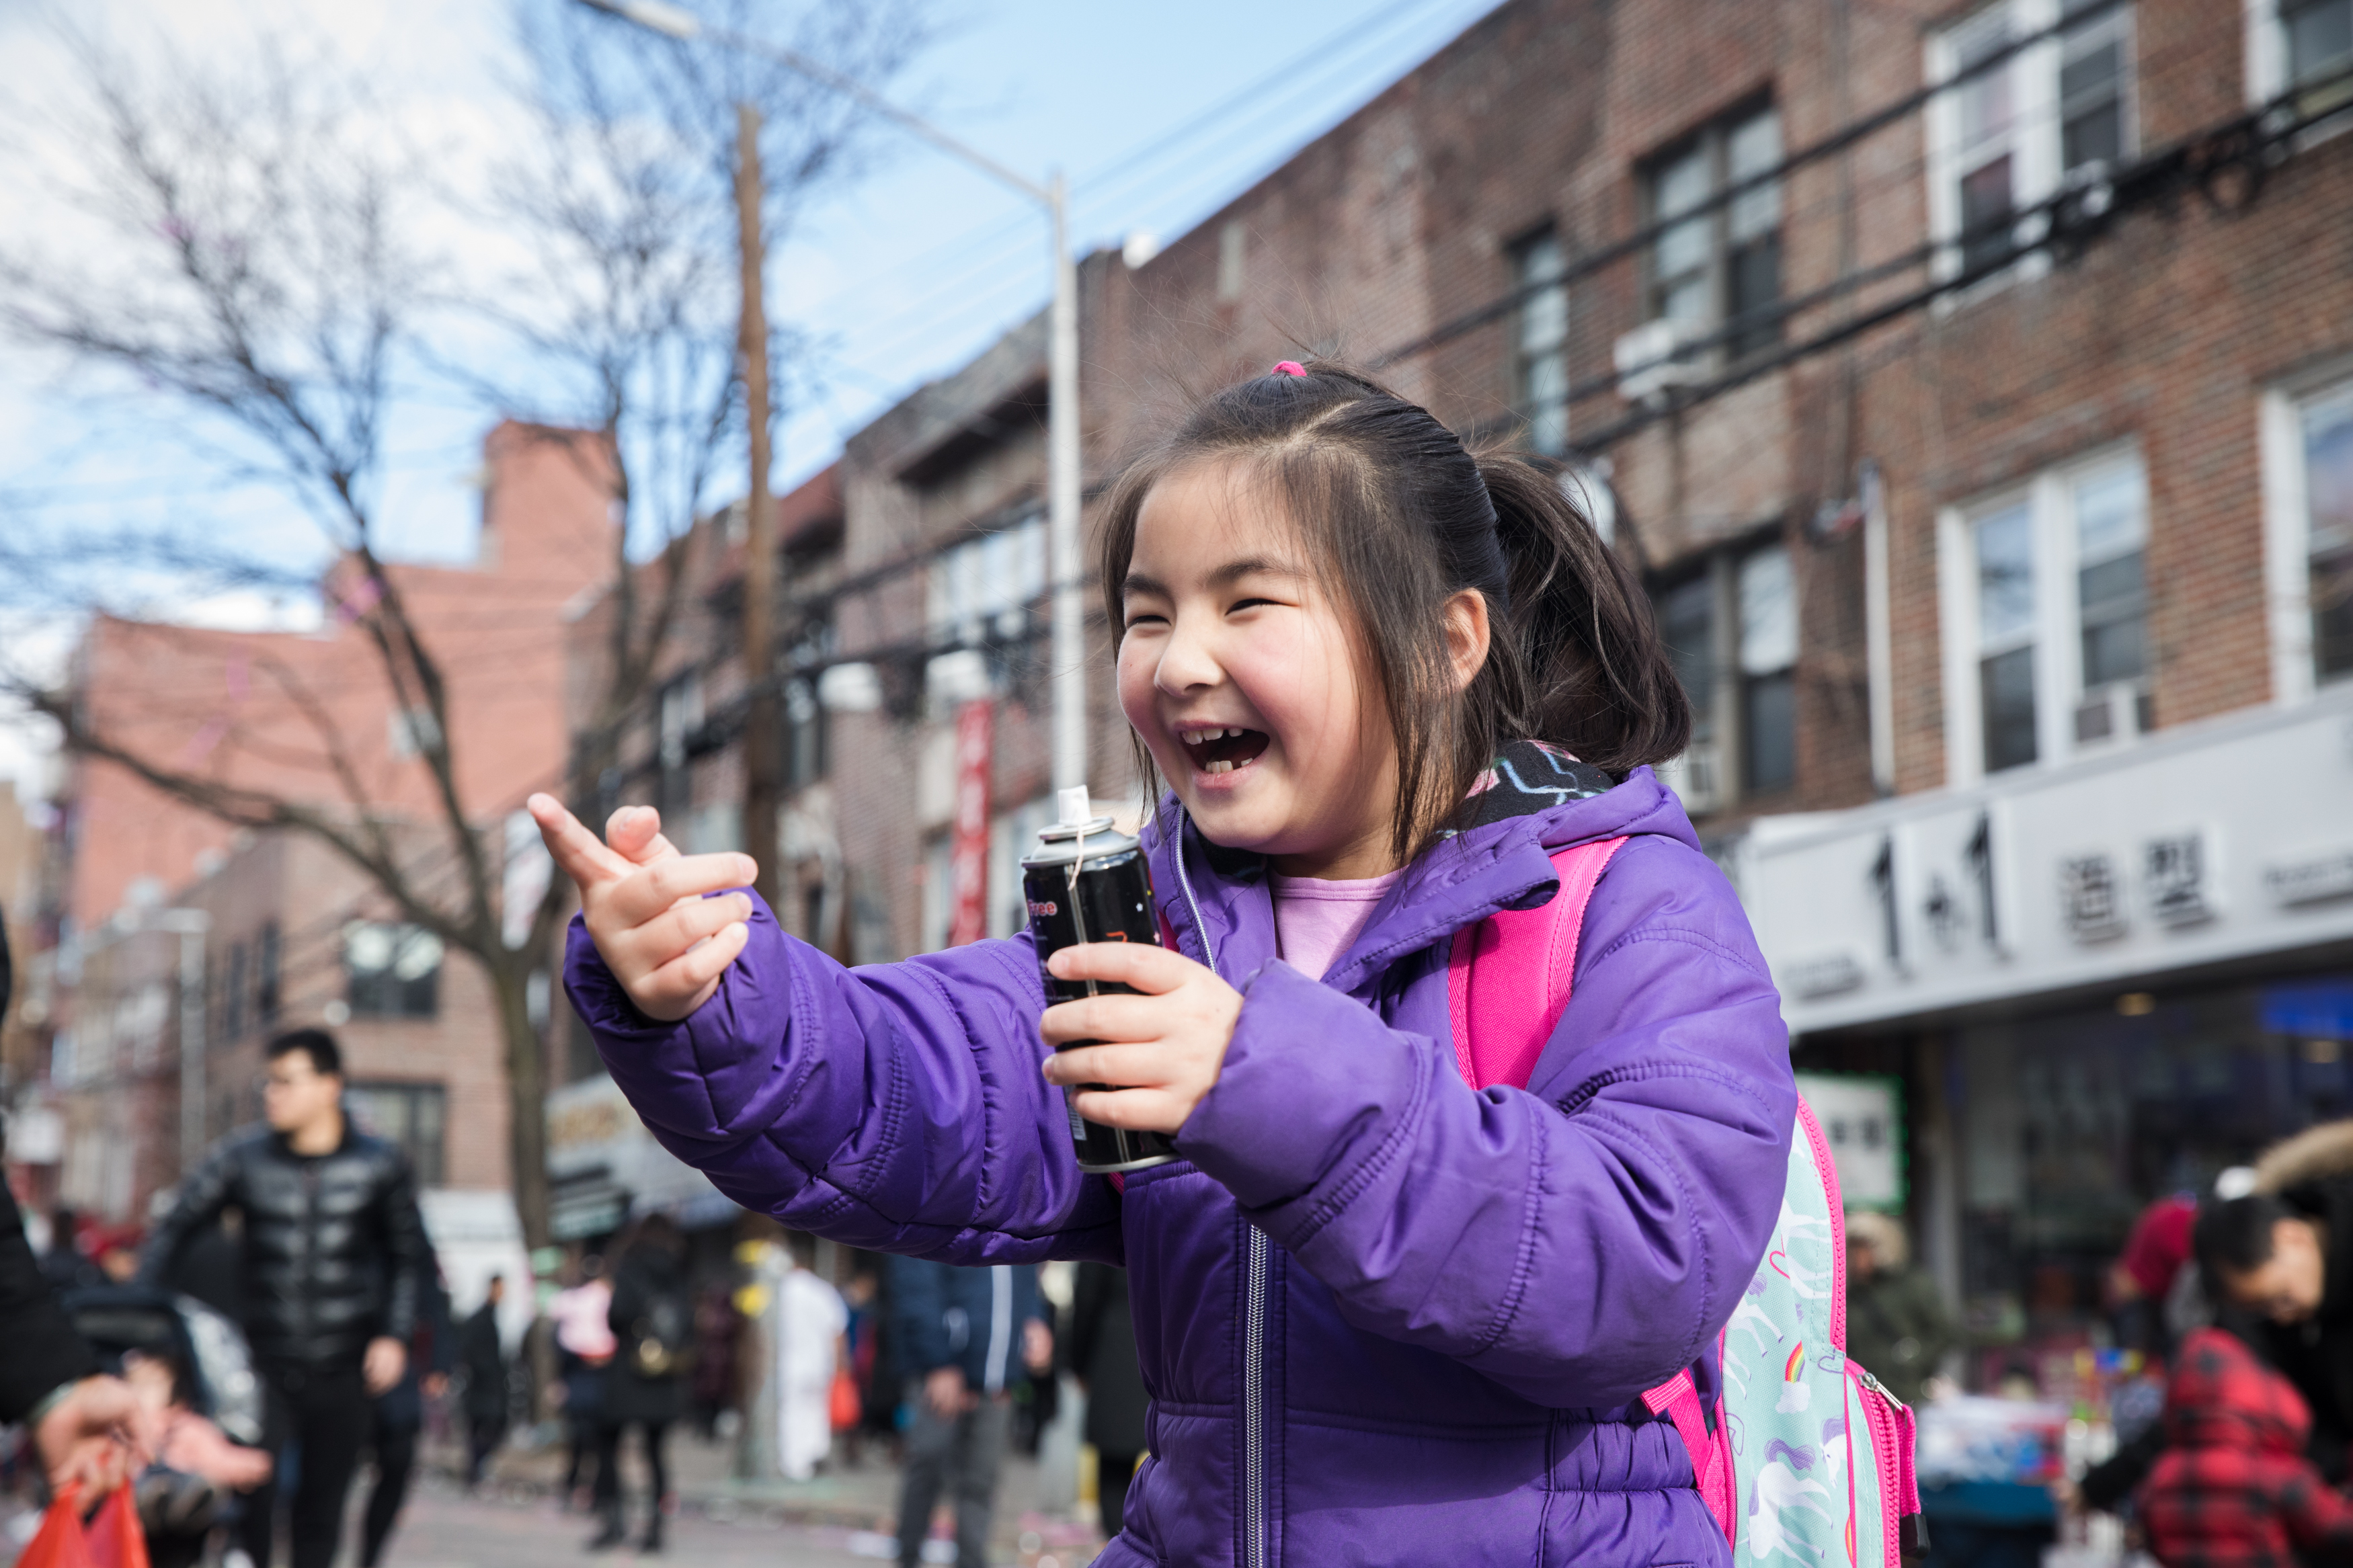 A little girl laughs as she sprays a relative with silly string.